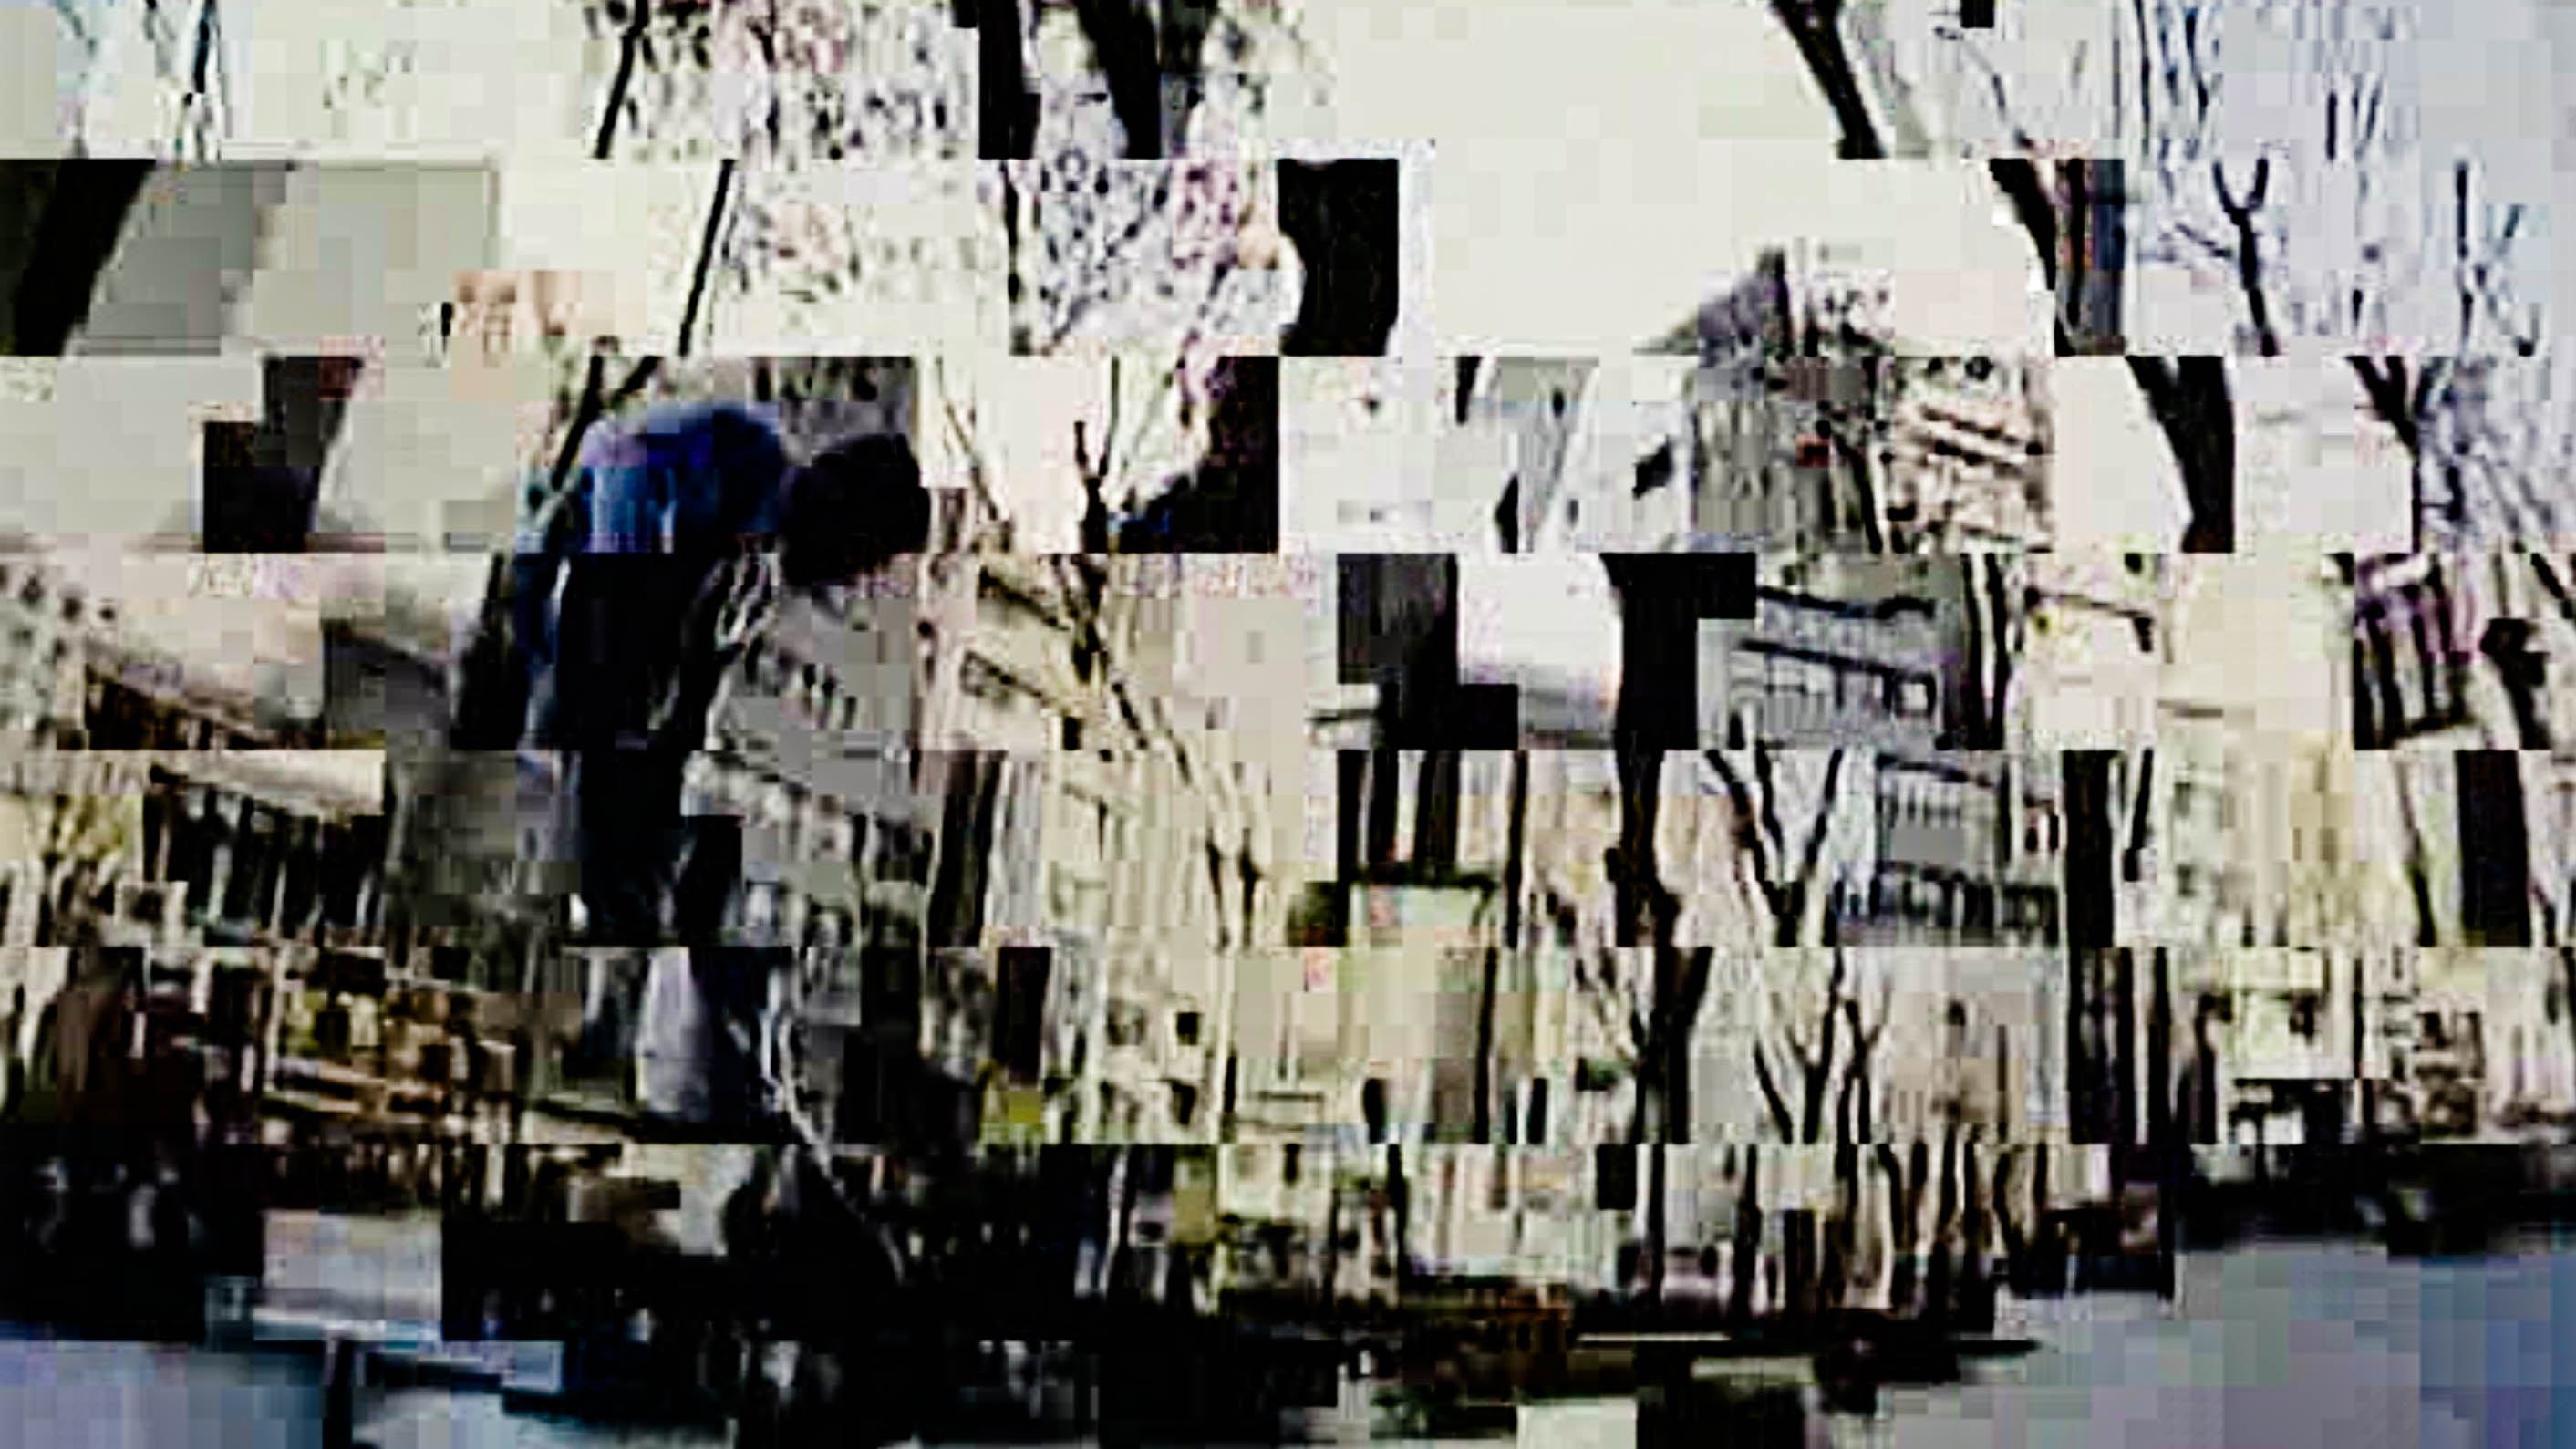 A video still is broken up into a mosaic, with what could be a person hunched over in the left-hand side of the screen. The broken-up background is composed of buildings and trees.